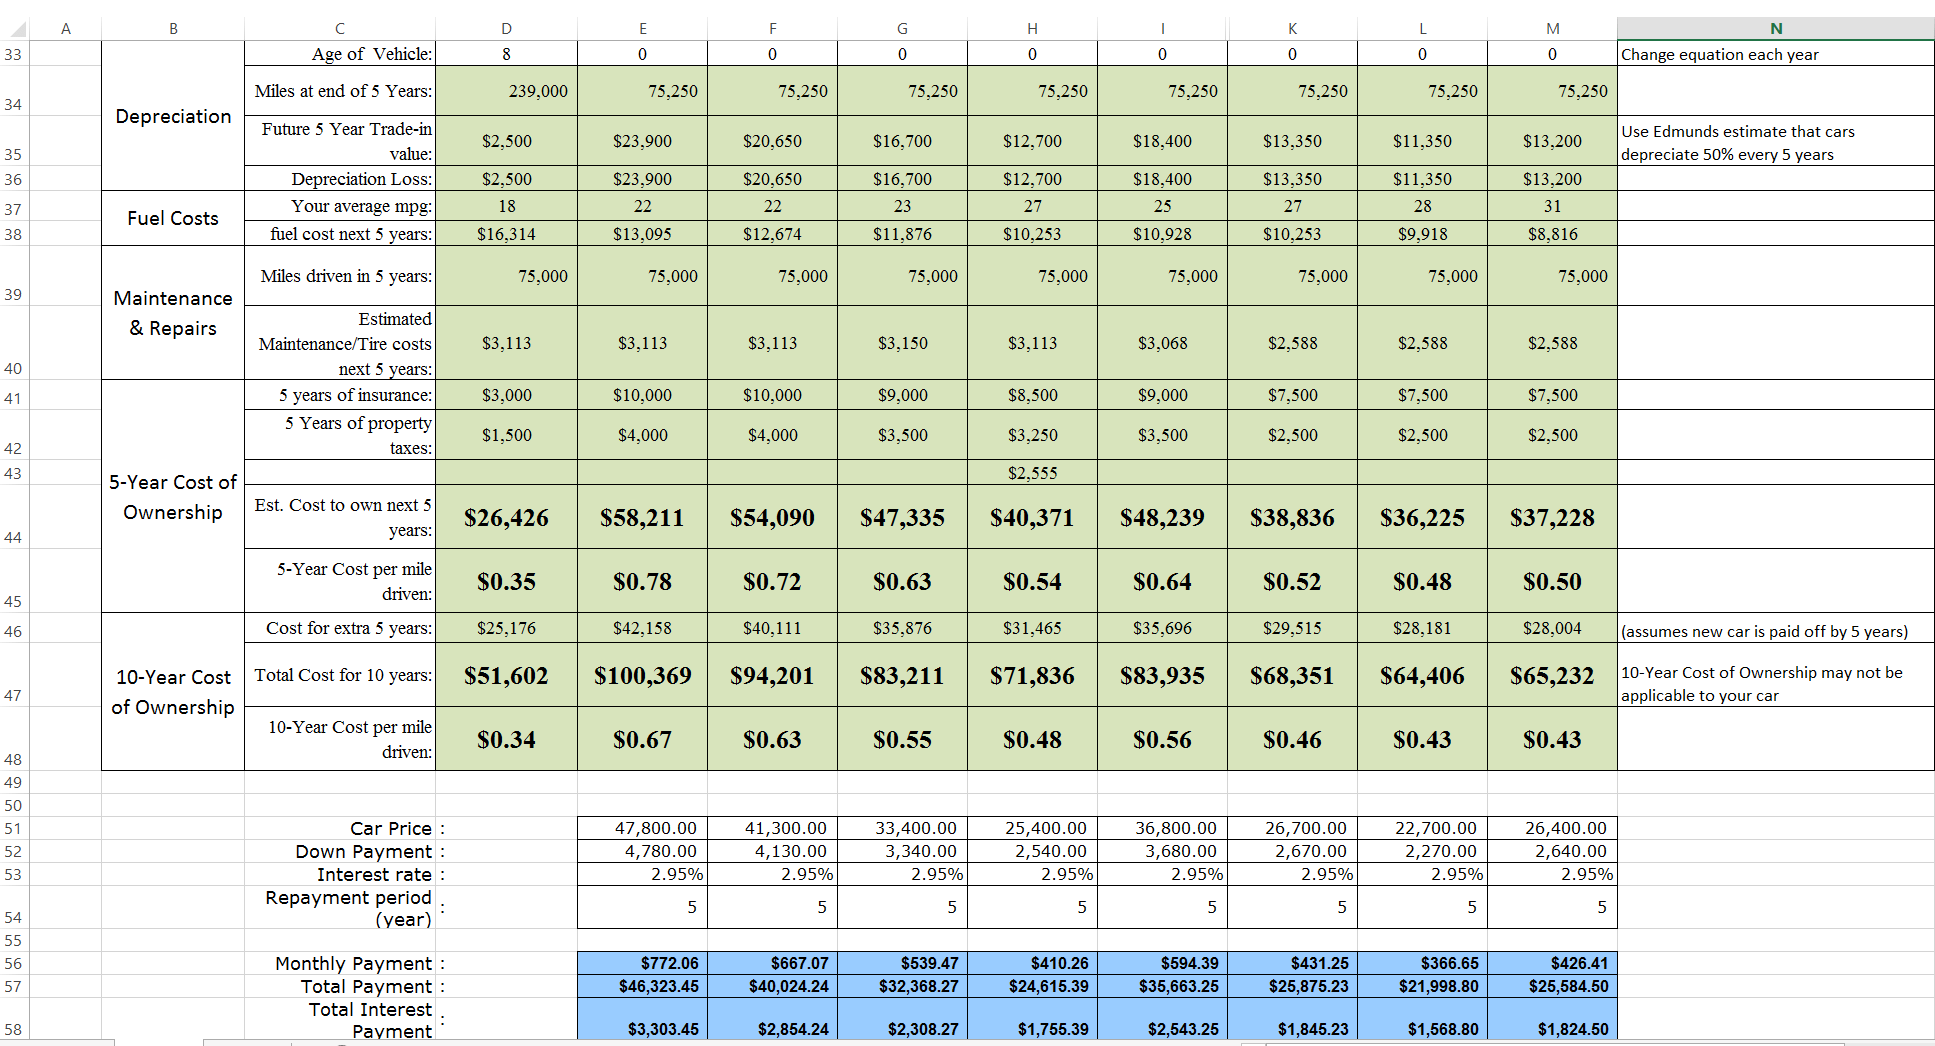 How To Compare Data In Two Excel Sheets Using Vlookup